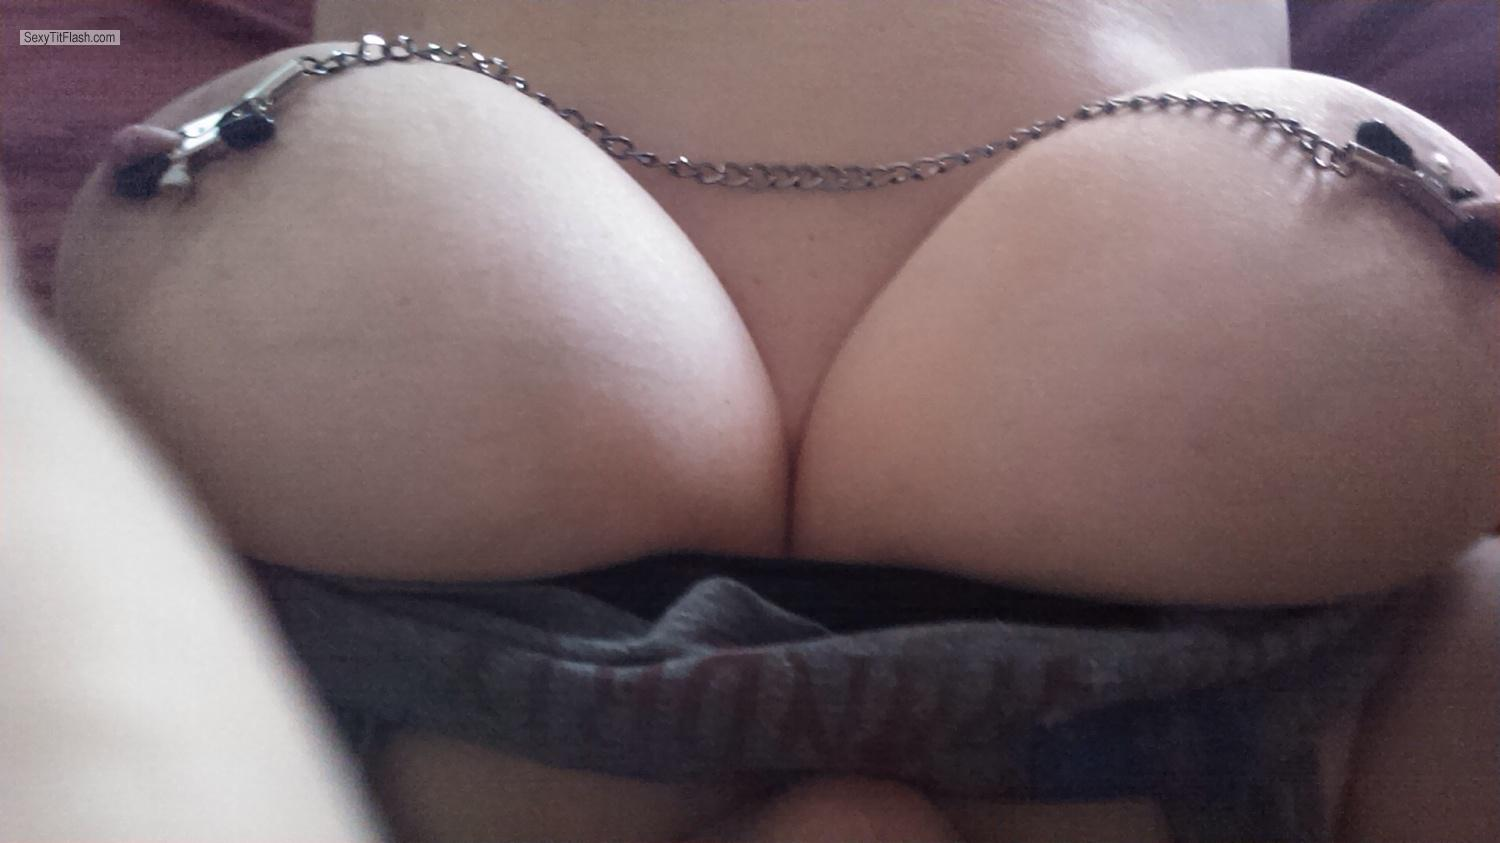 My Very big Tits Selfie by DDwife